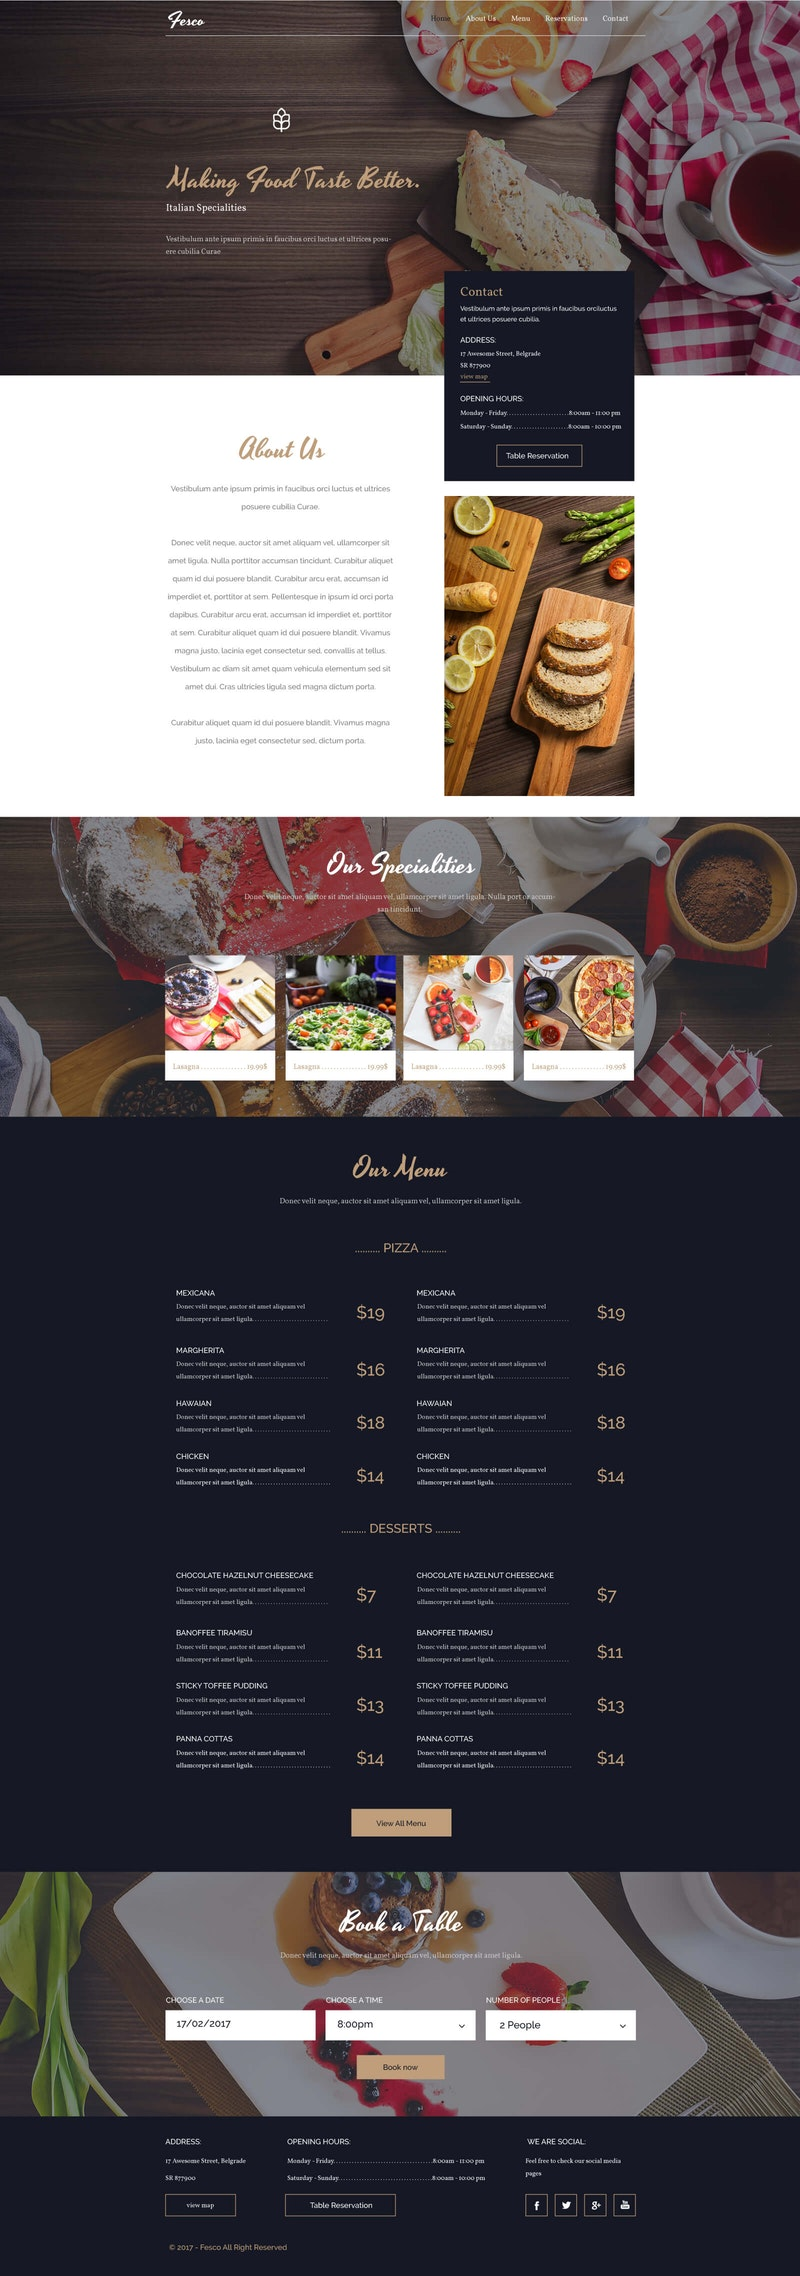 Fesco - Restaurant PSD Template preview